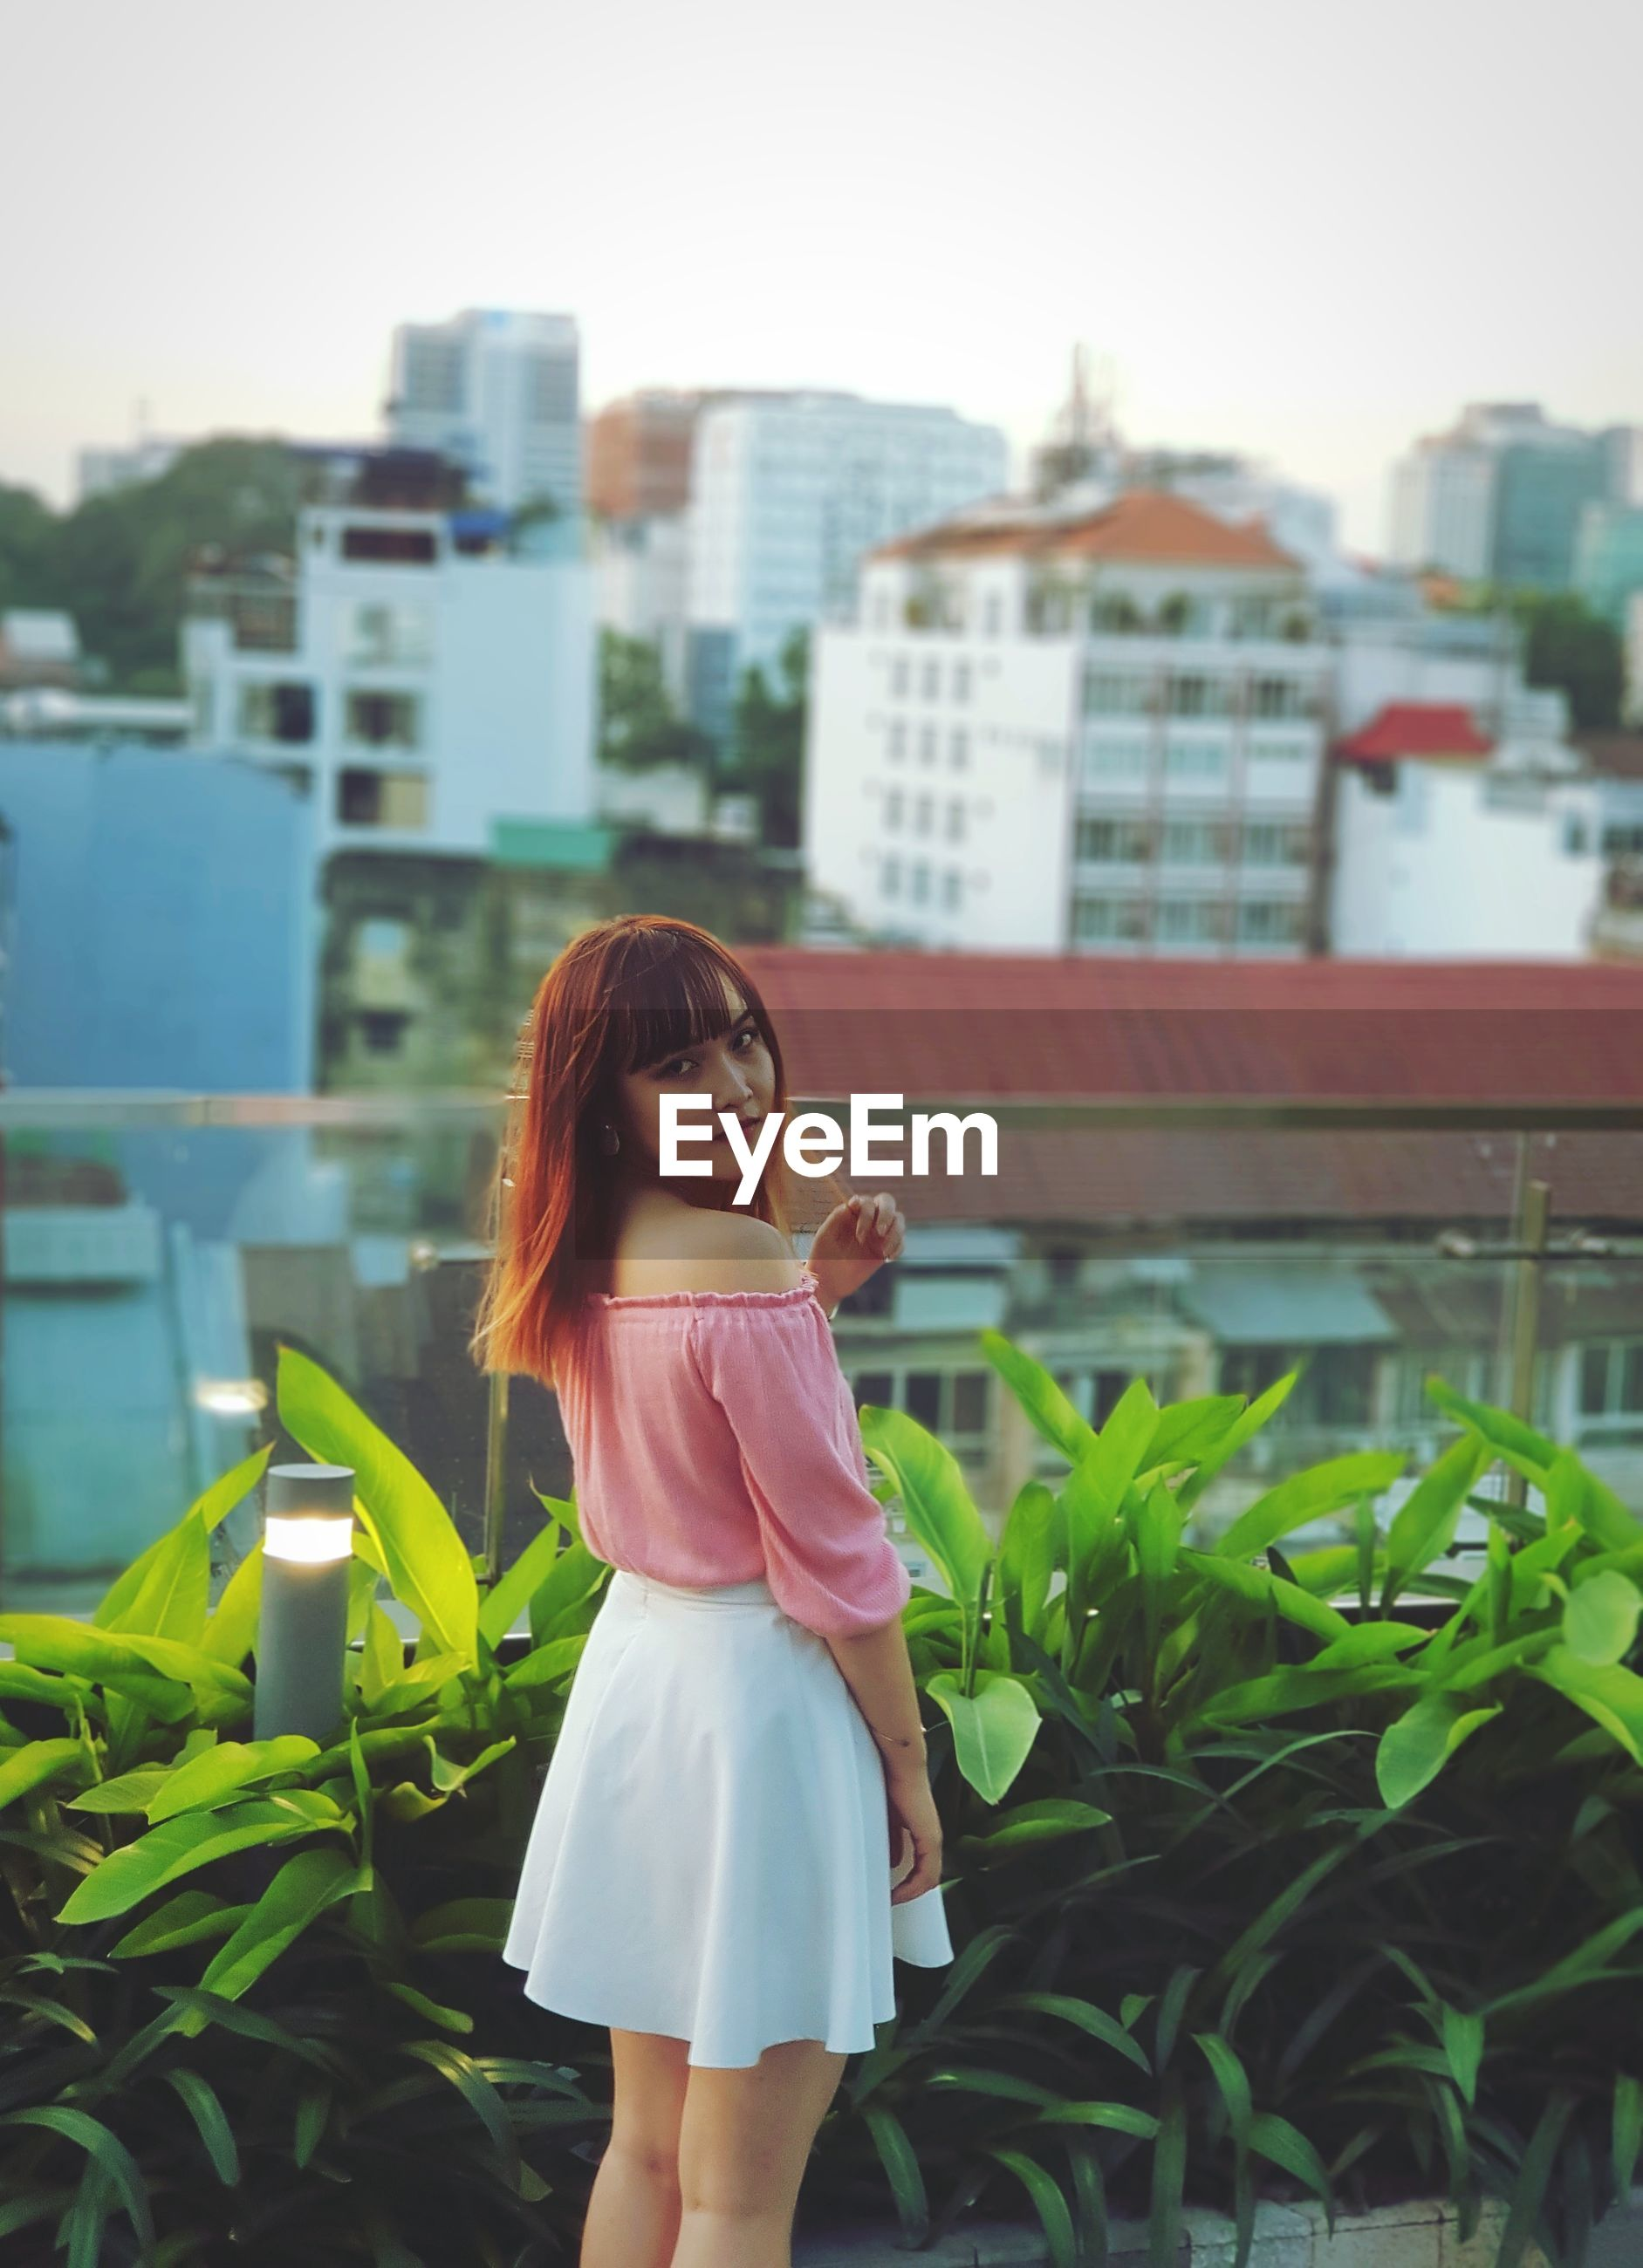 Portrait of young woman standing by plants in city against sky